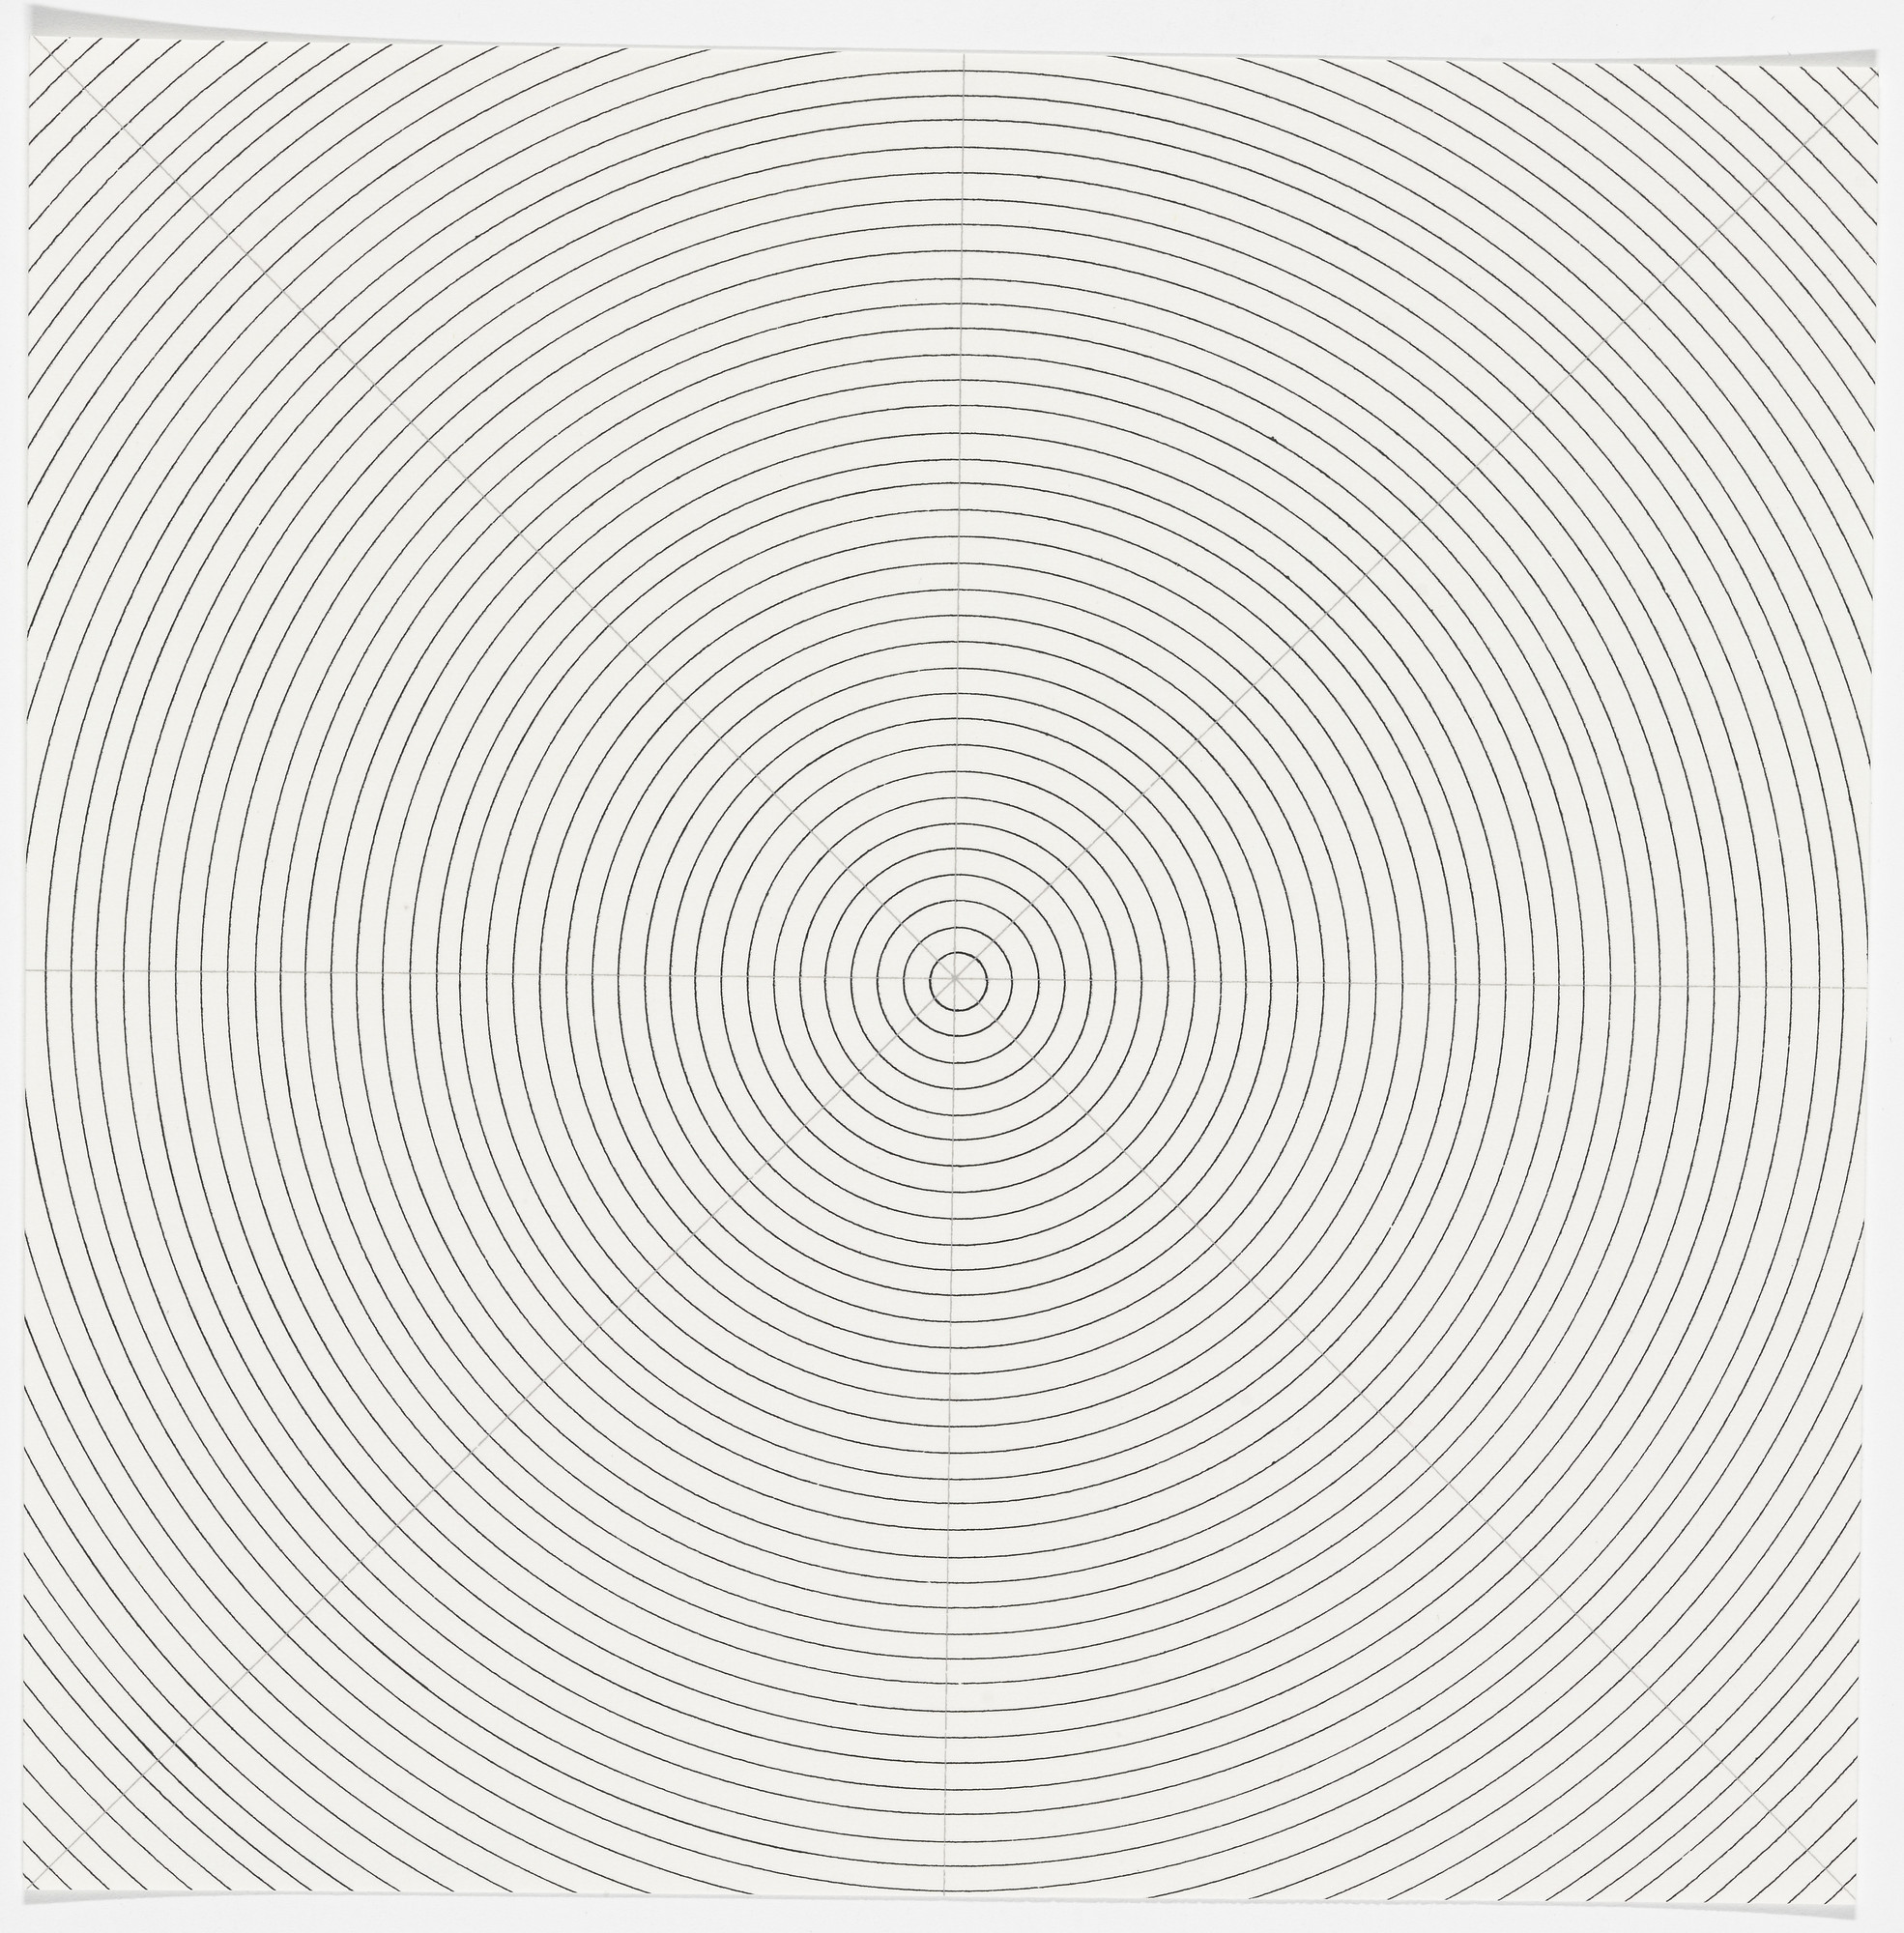 Sol LeWitt. Circles from The New York Collection for Stockholm. 1973